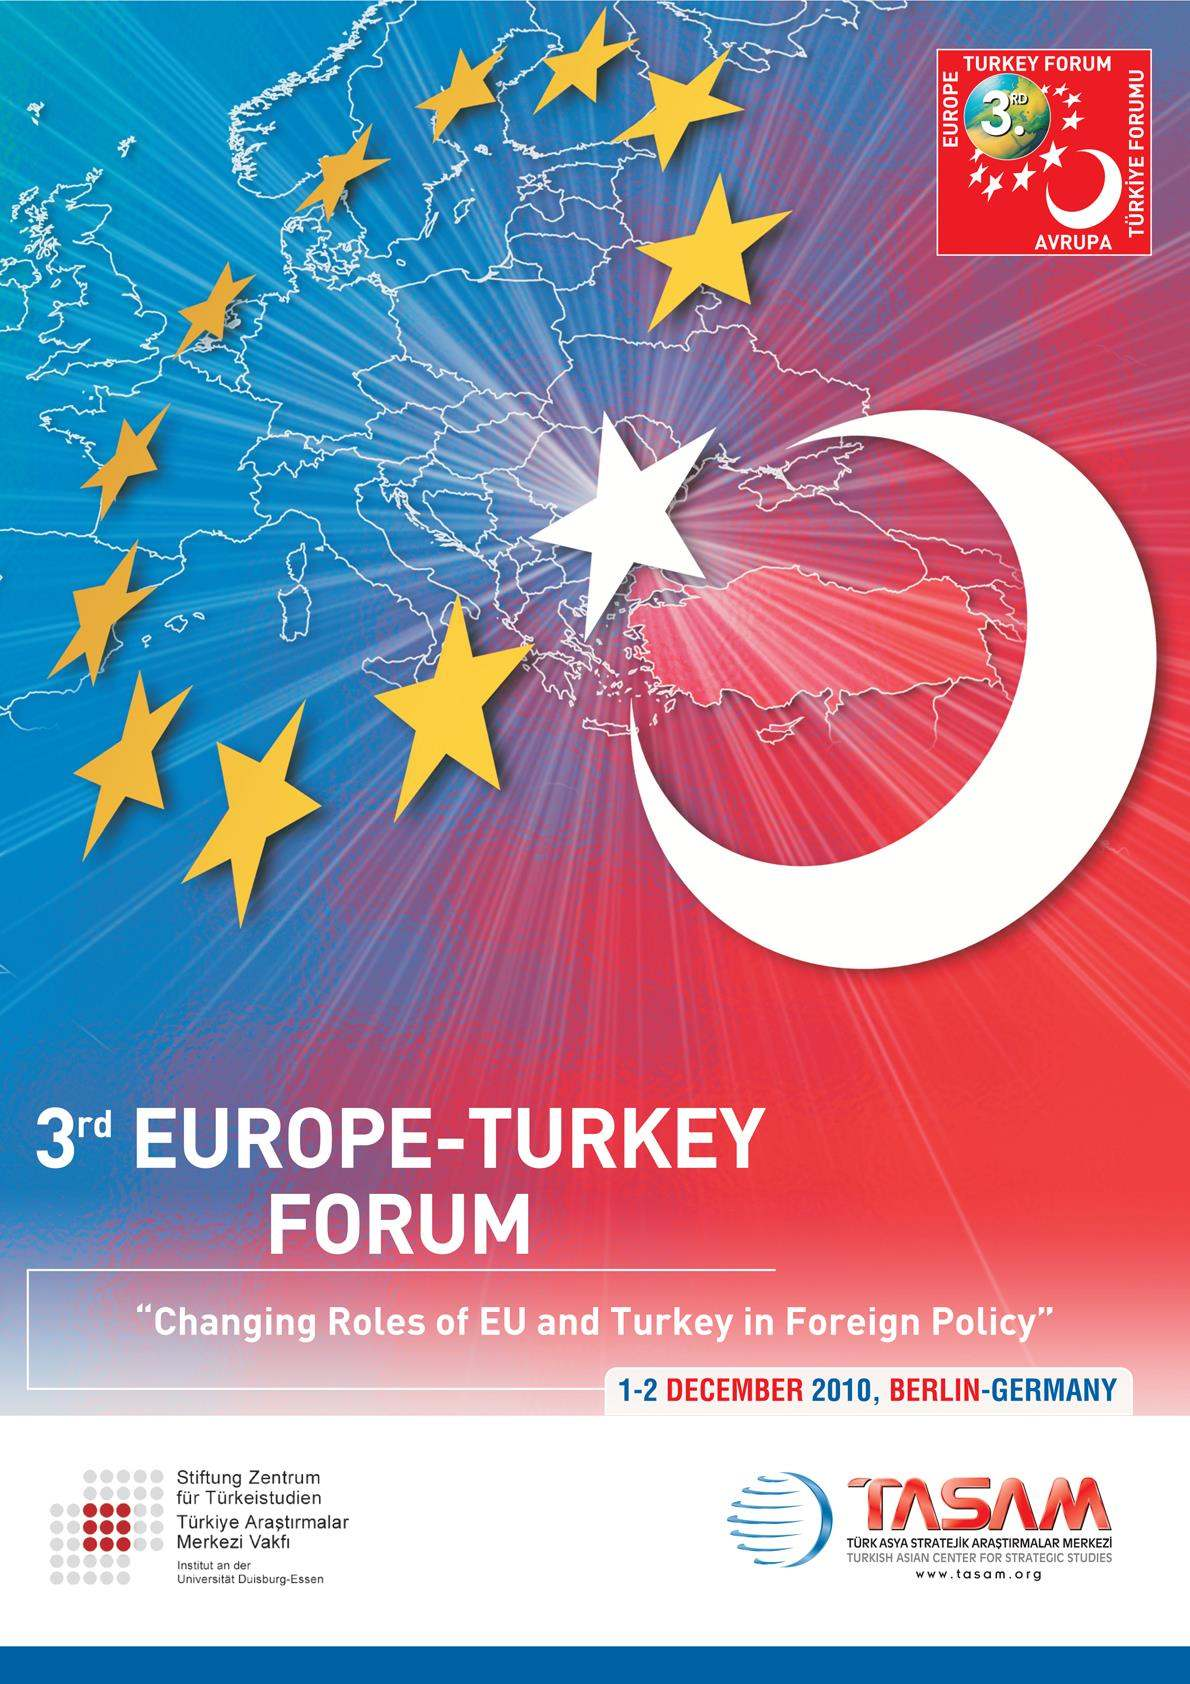 3rt Europa - Turkey Forum